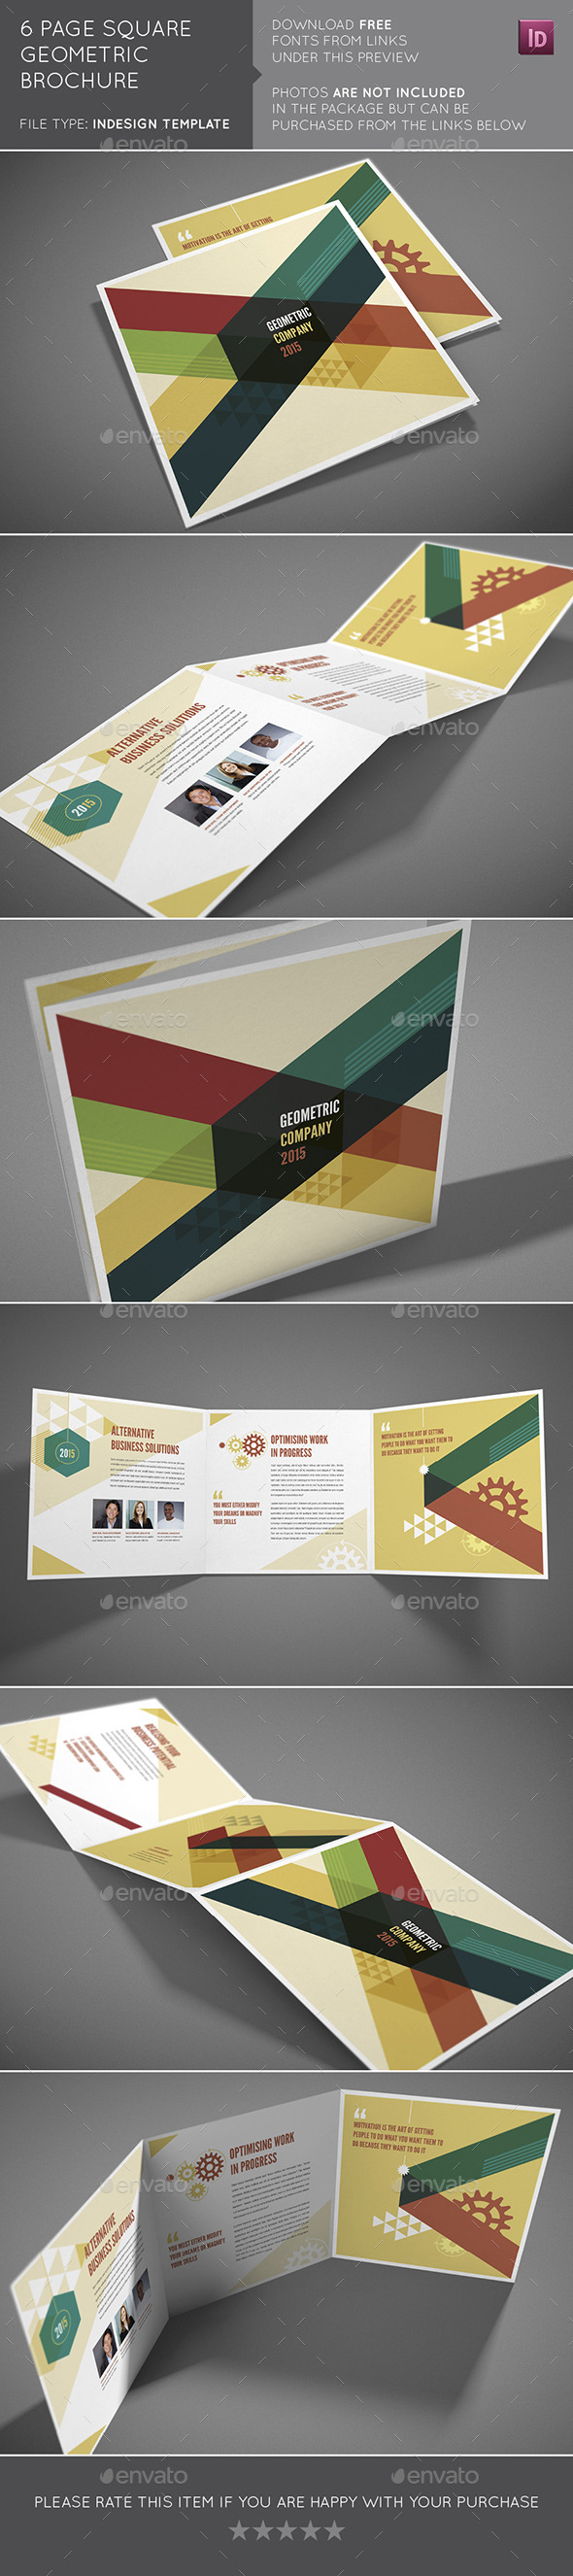 GraphicRiver 6 Page Square Geometric Brochure 10410545